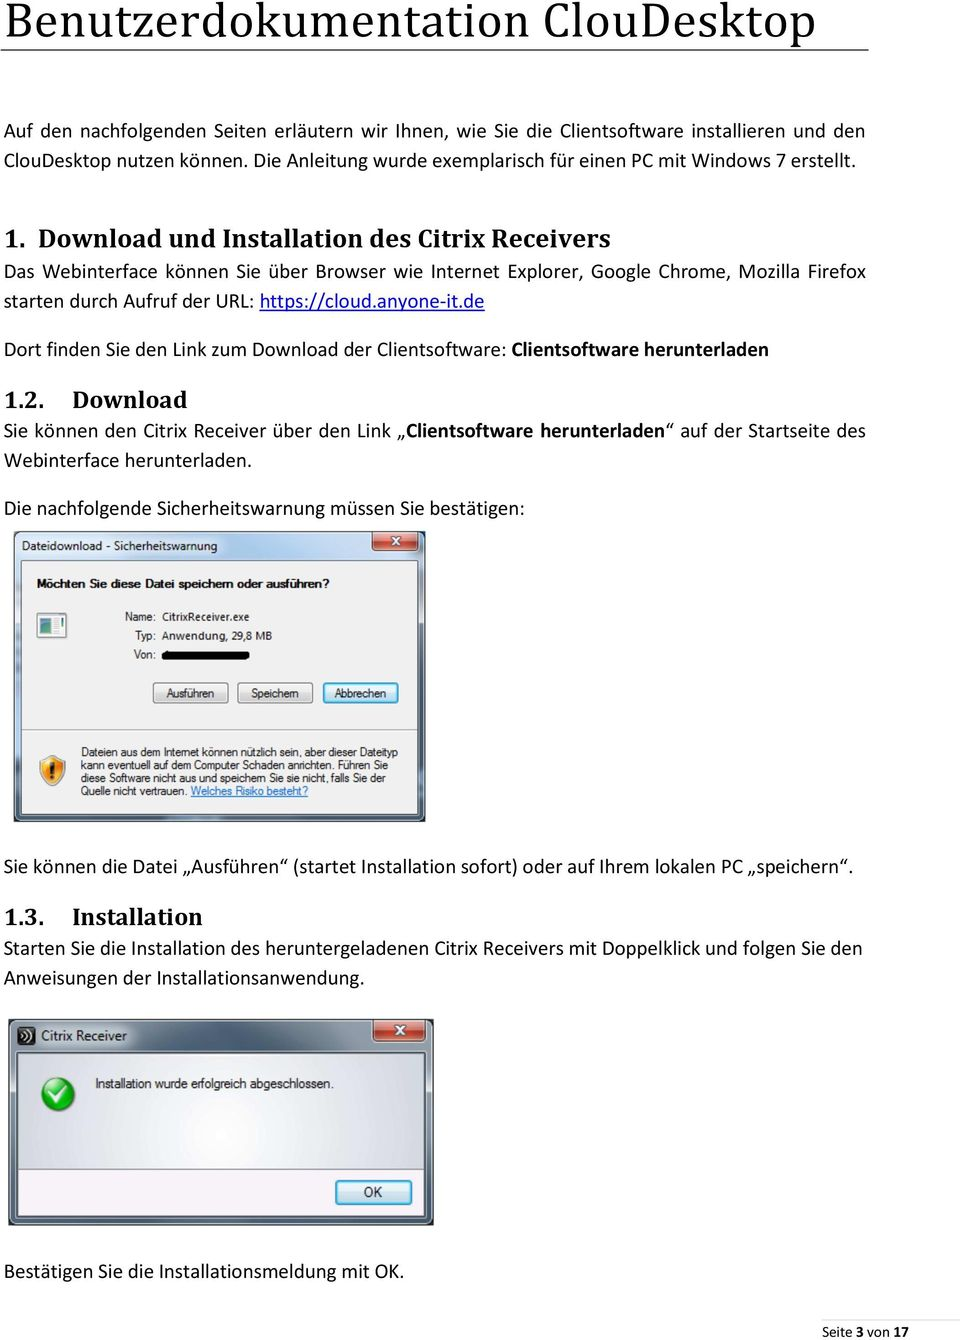 Download und Installation des Citrix Receivers Das Webinterface können Sie über Browser wie Internet Explorer, Google Chrome, Mozilla Firefox starten durch Aufruf der URL: https://cloud.anyone-it.